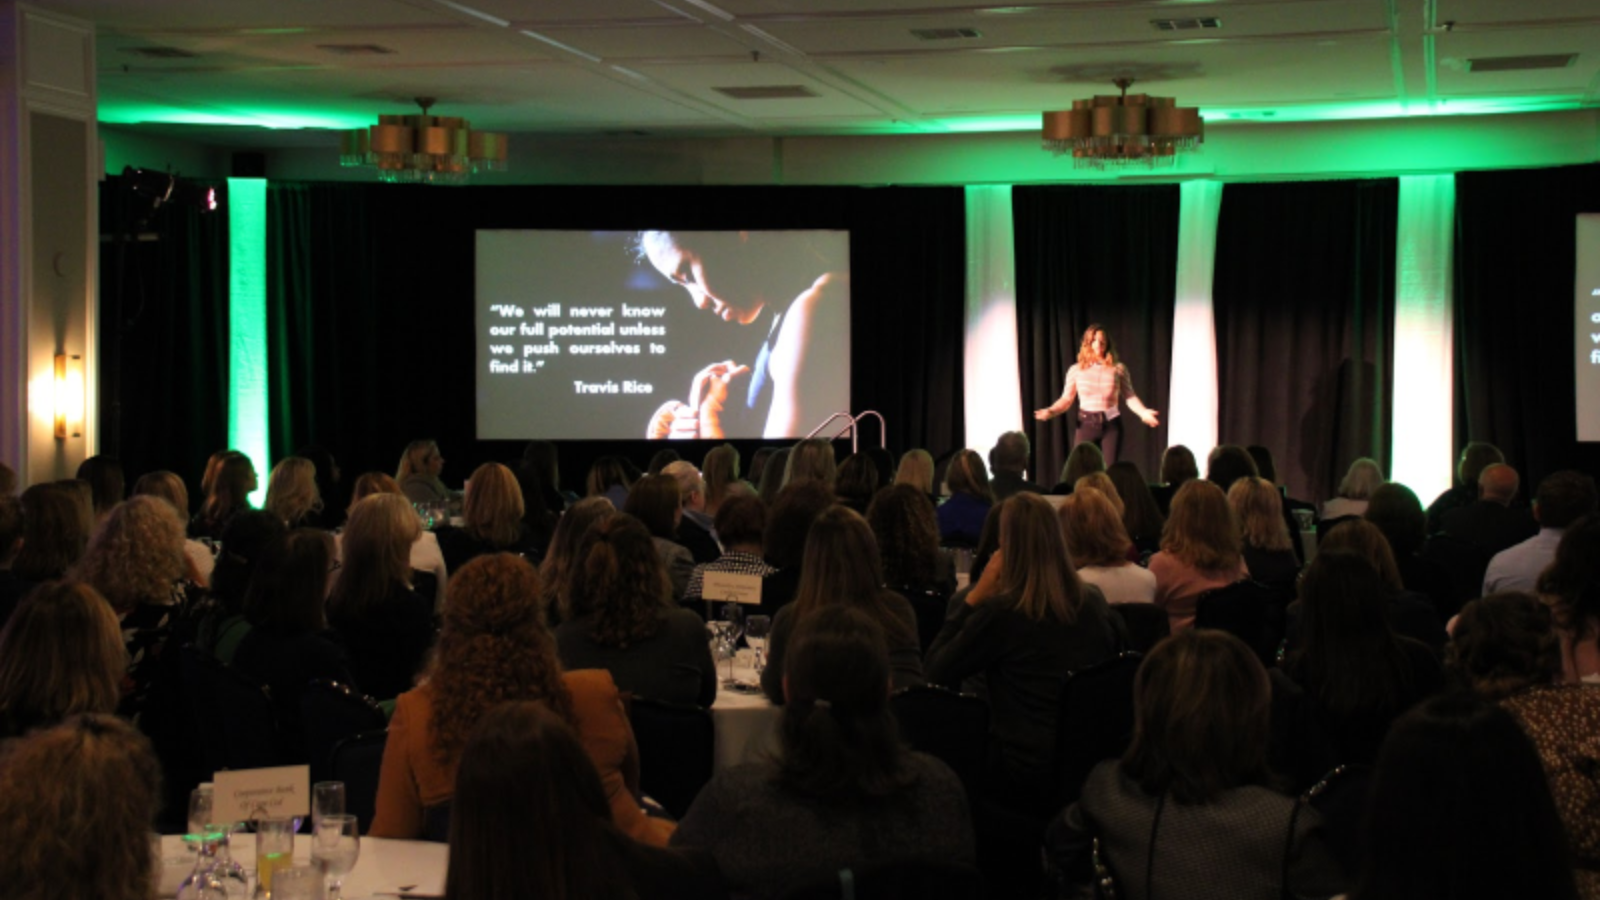 A presenter gives her speech at New England Women in Banking Conference